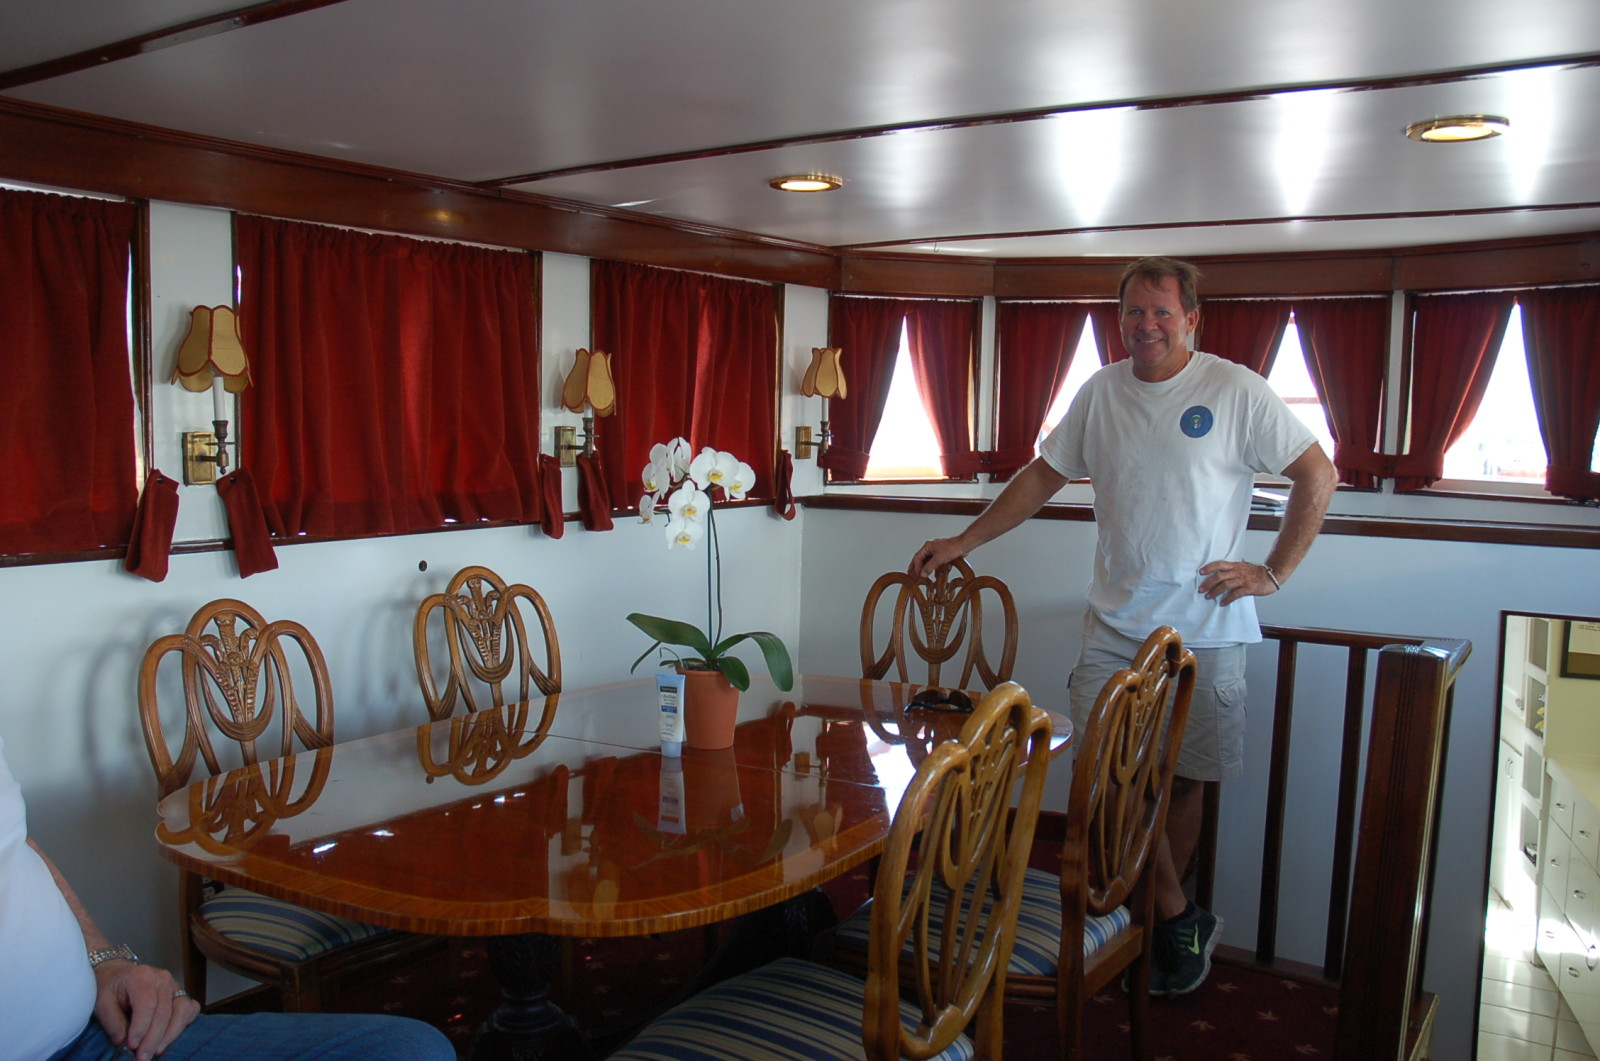 Capt. Greg Albritton is a wealth of historical knowledge -- including some personal stories -- with the former presidential yacht M/Y Honey Fitz. PHOTO/LUCY REED